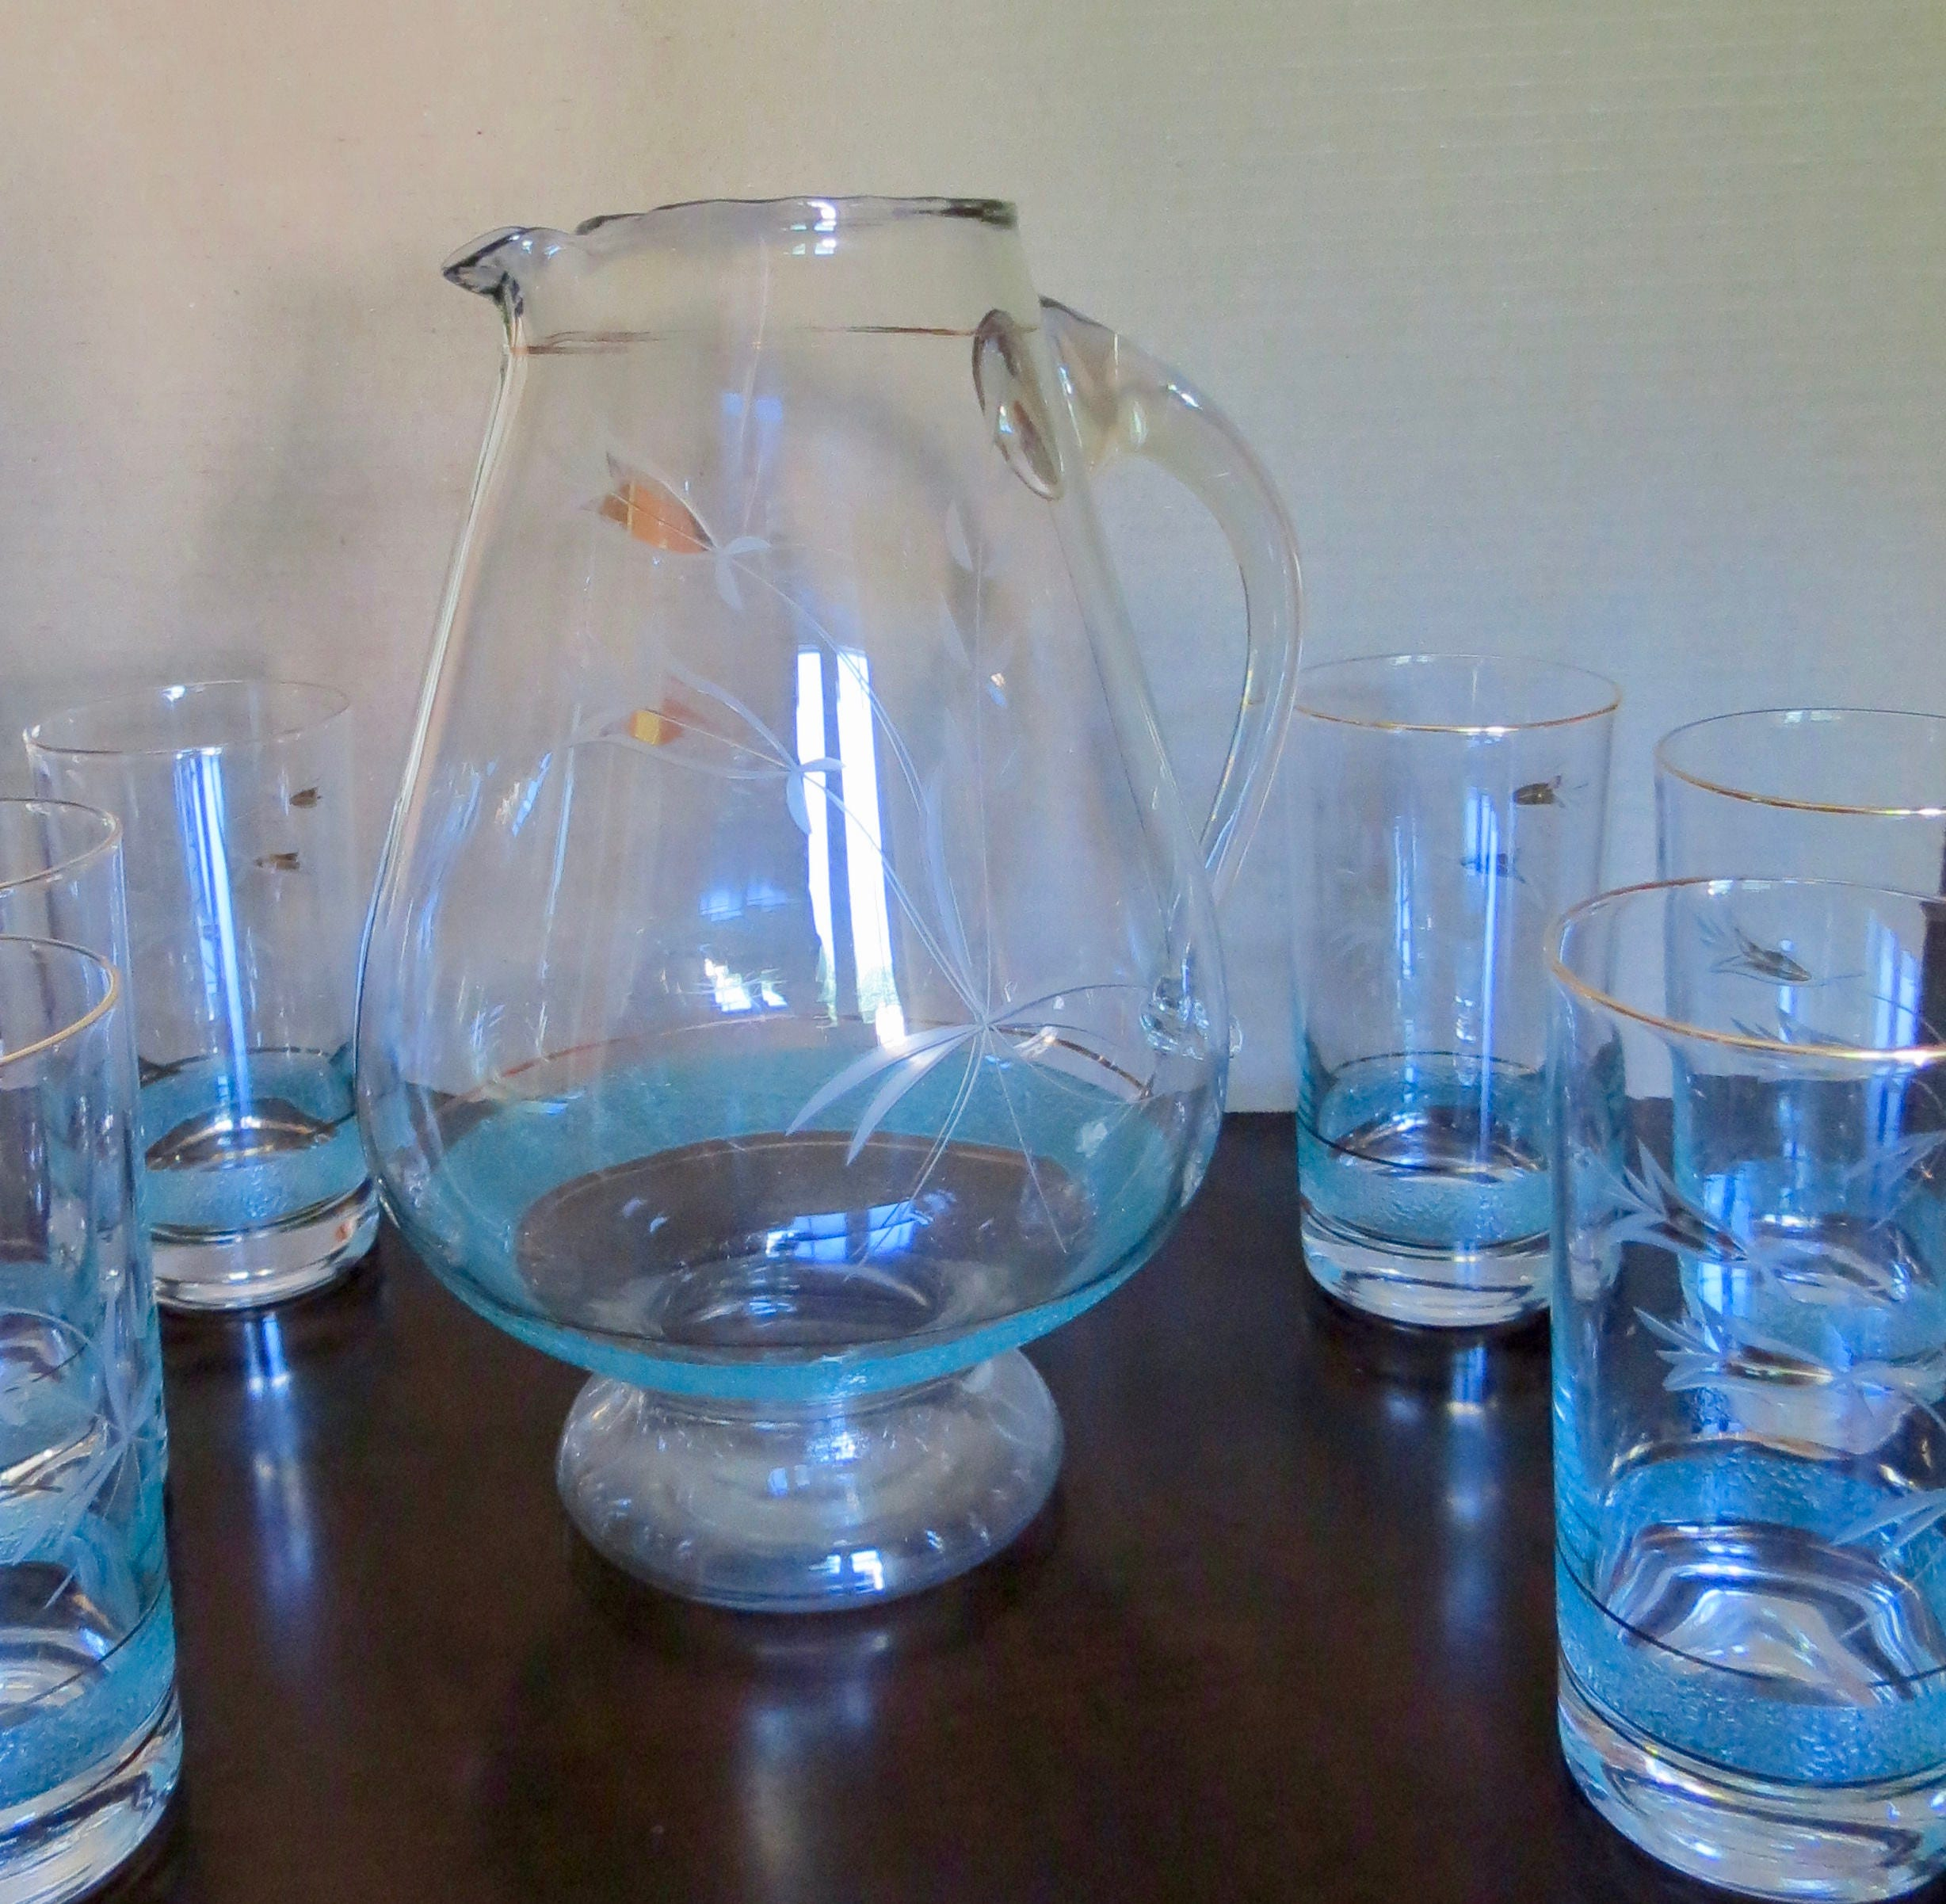 Image 4 of Vintage Pitcher Set - Mid Century Turquoise and Gold Graphics, Pitcher with Six